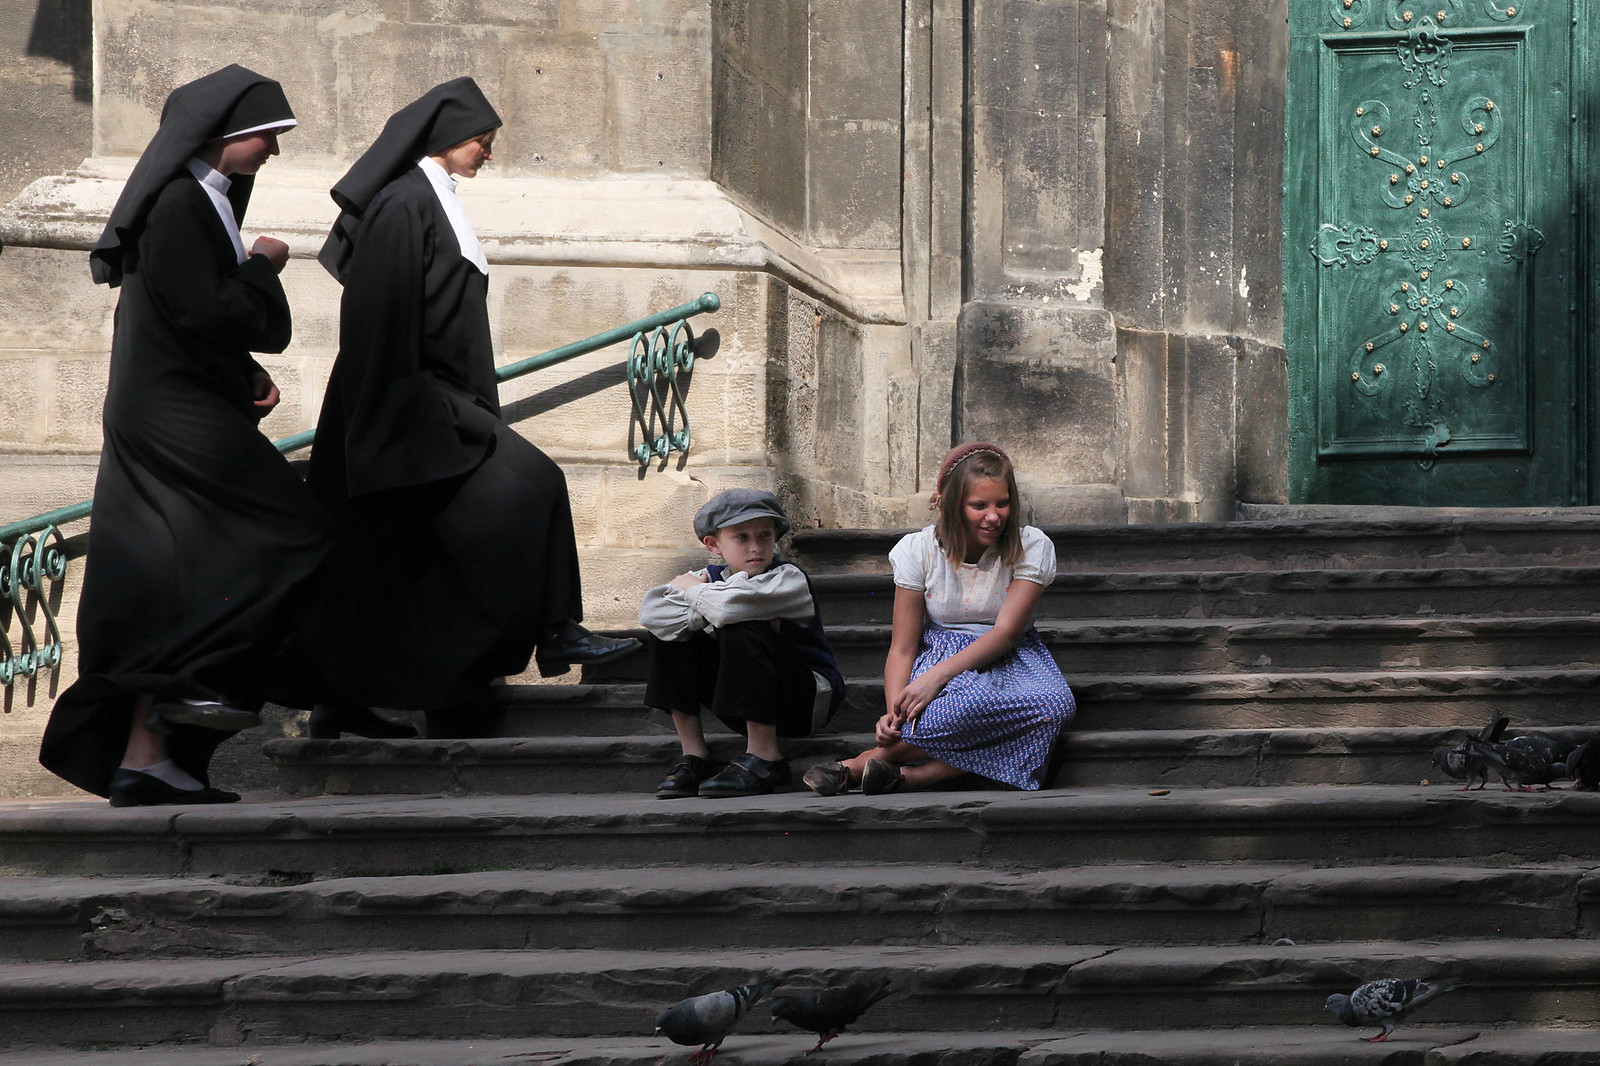 Children, nuns and pigeons. | by tetyanabunyak